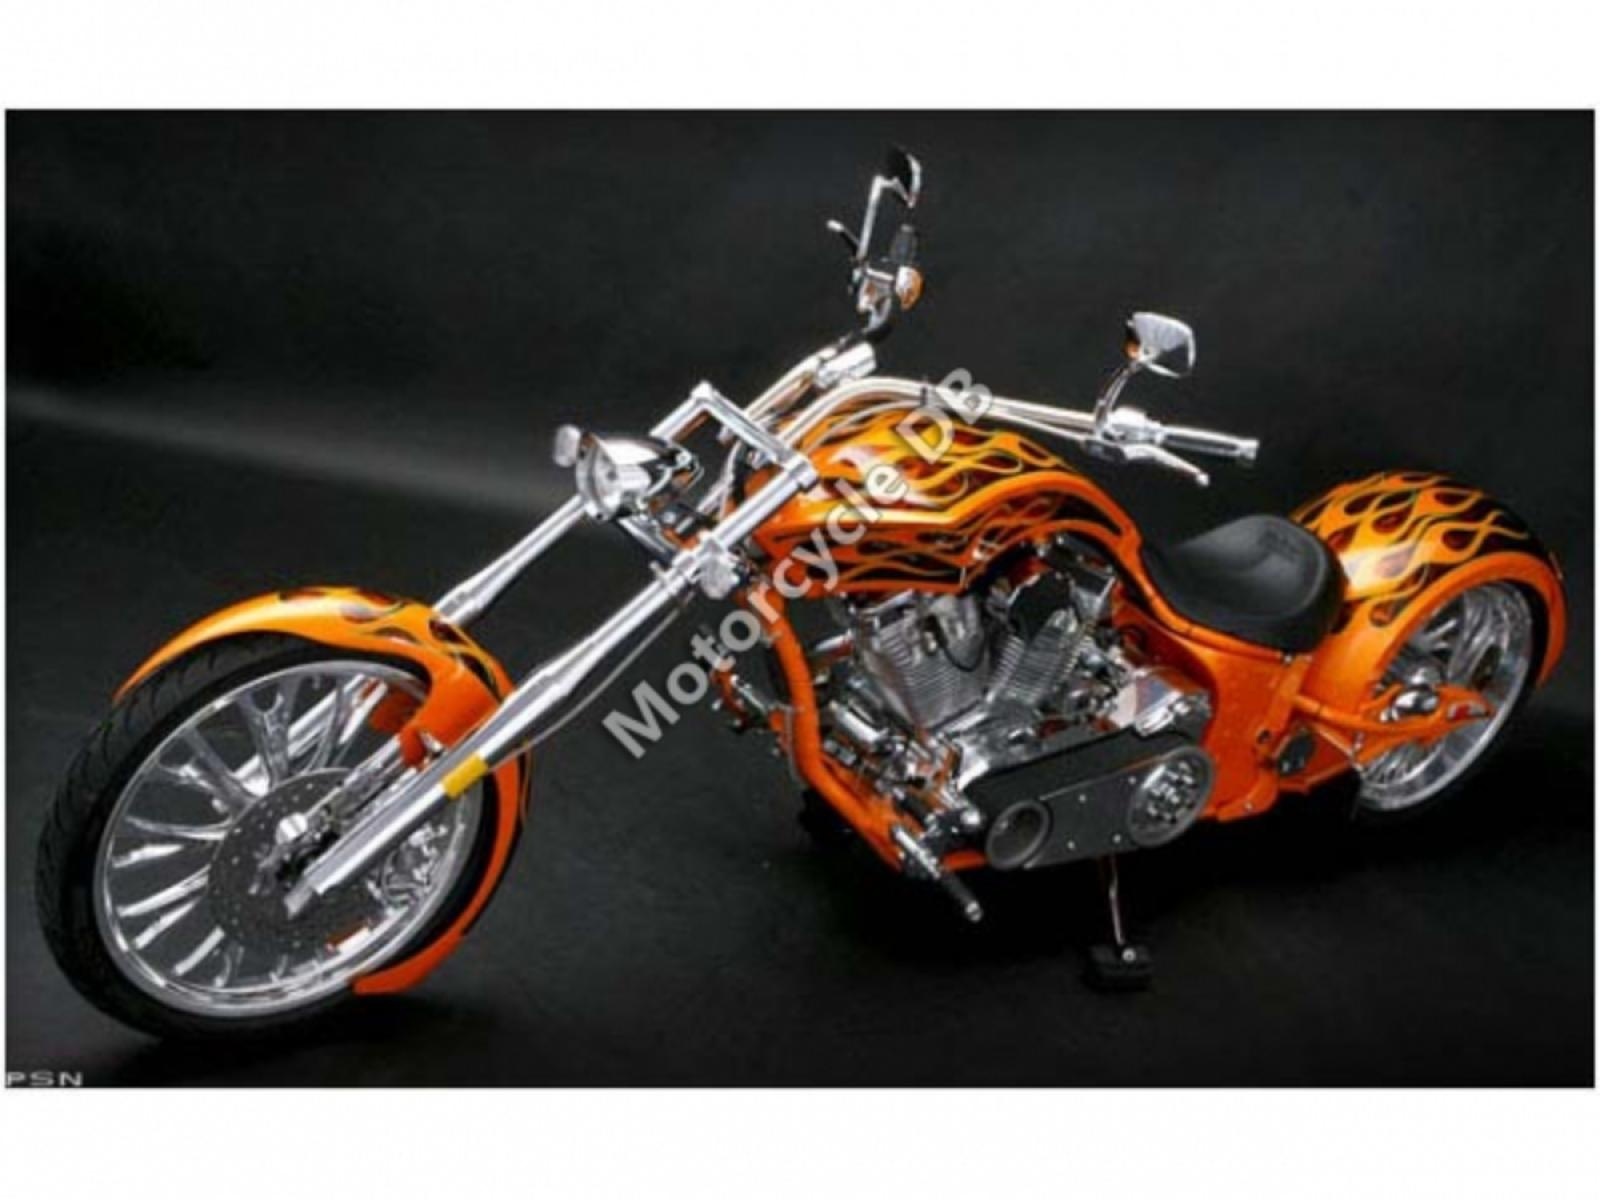 Big Bear Choppers Athena 114 X-Wedge 2009 images #92591